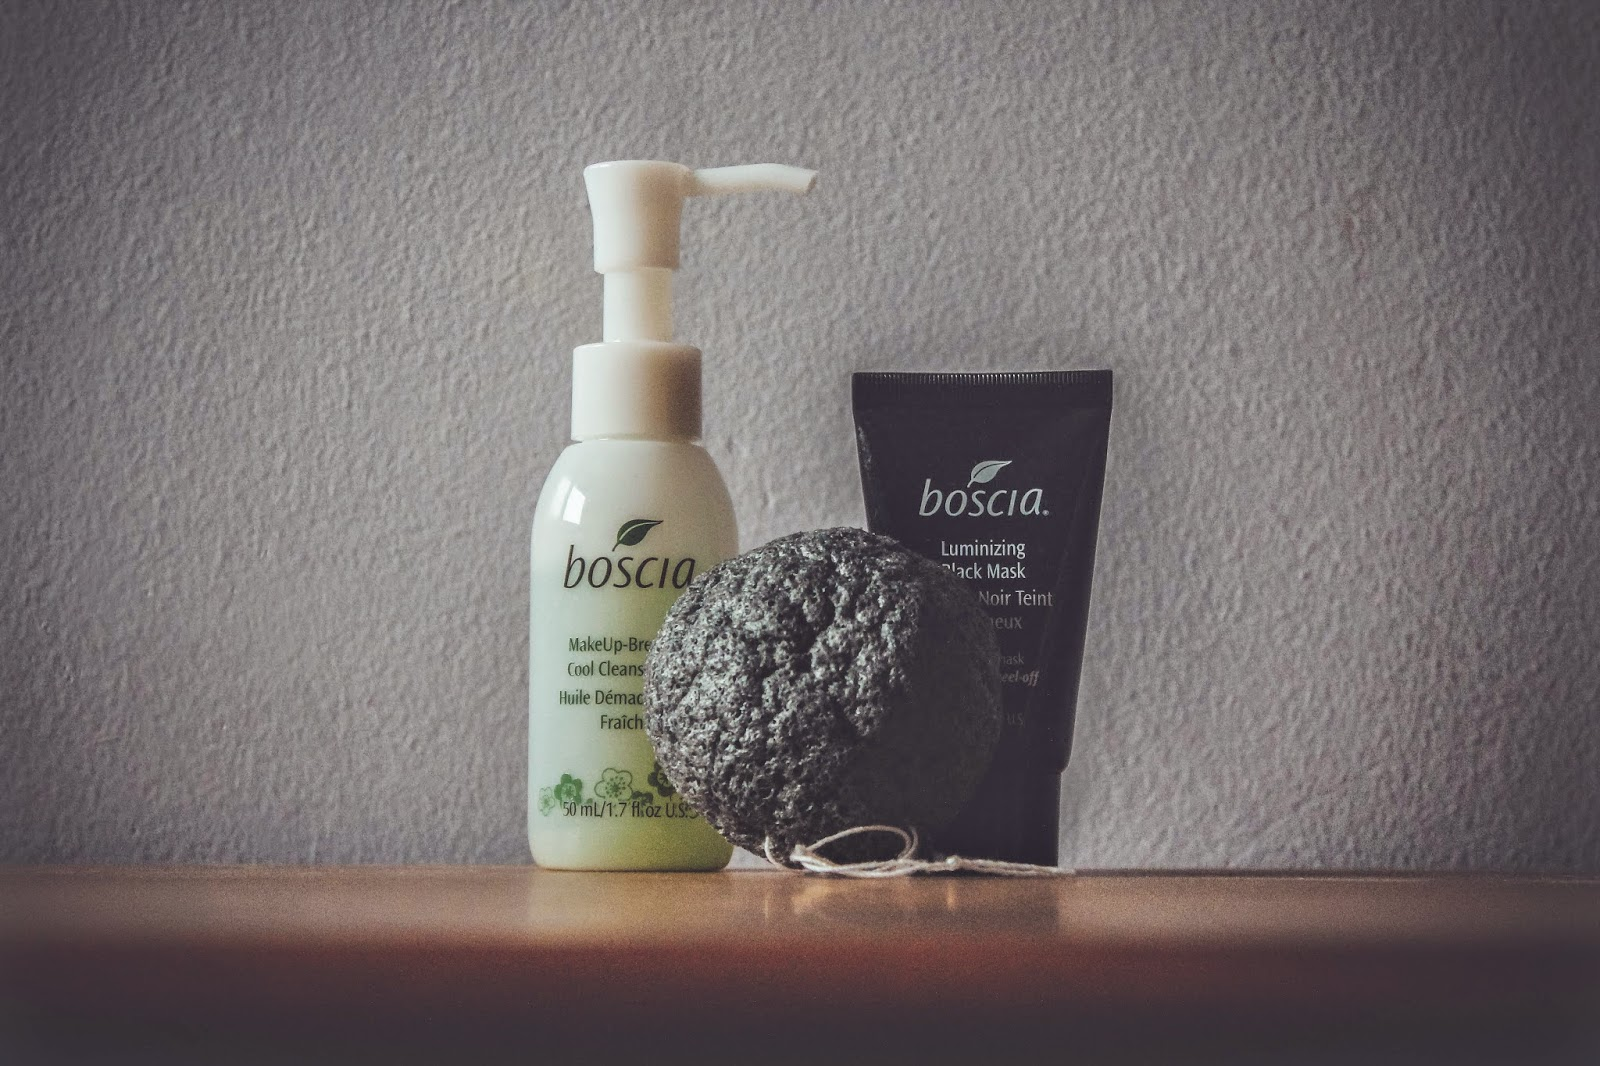 Tales Of Tiffany Love Boscia Skincare Bestsellers Review